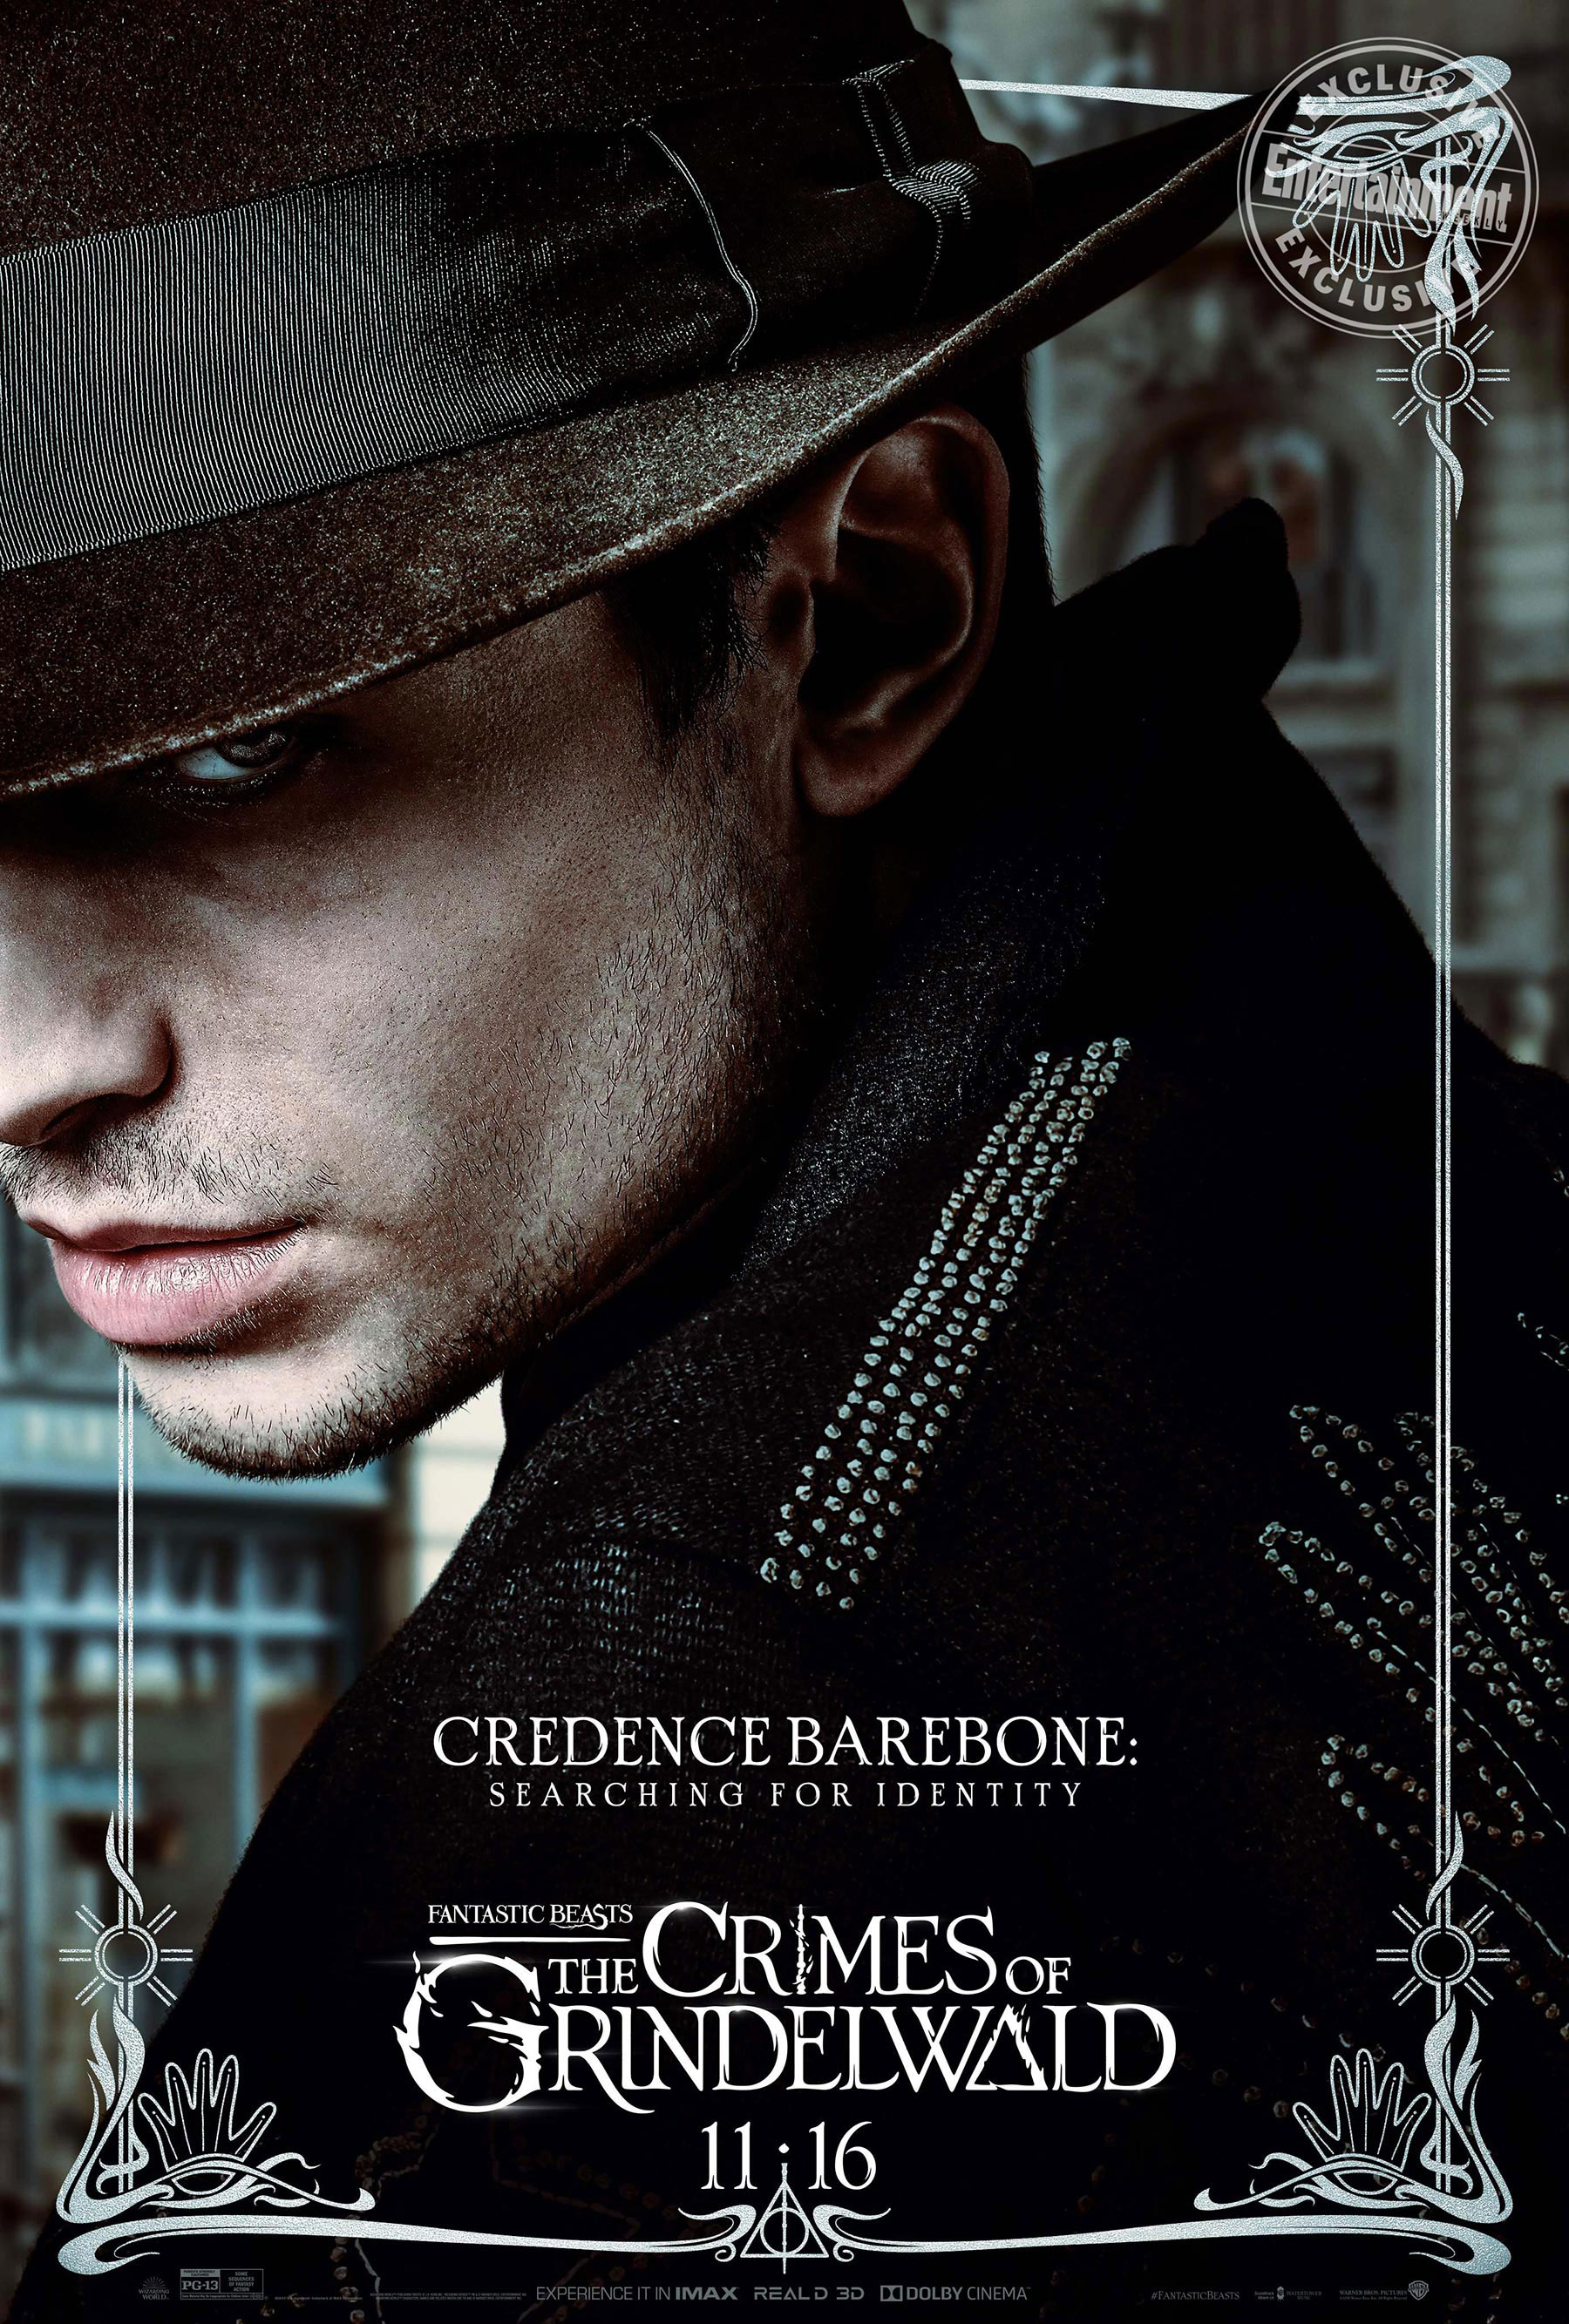 His poster suggests more intrigue and mystery. Will we find out what happened to Credence?